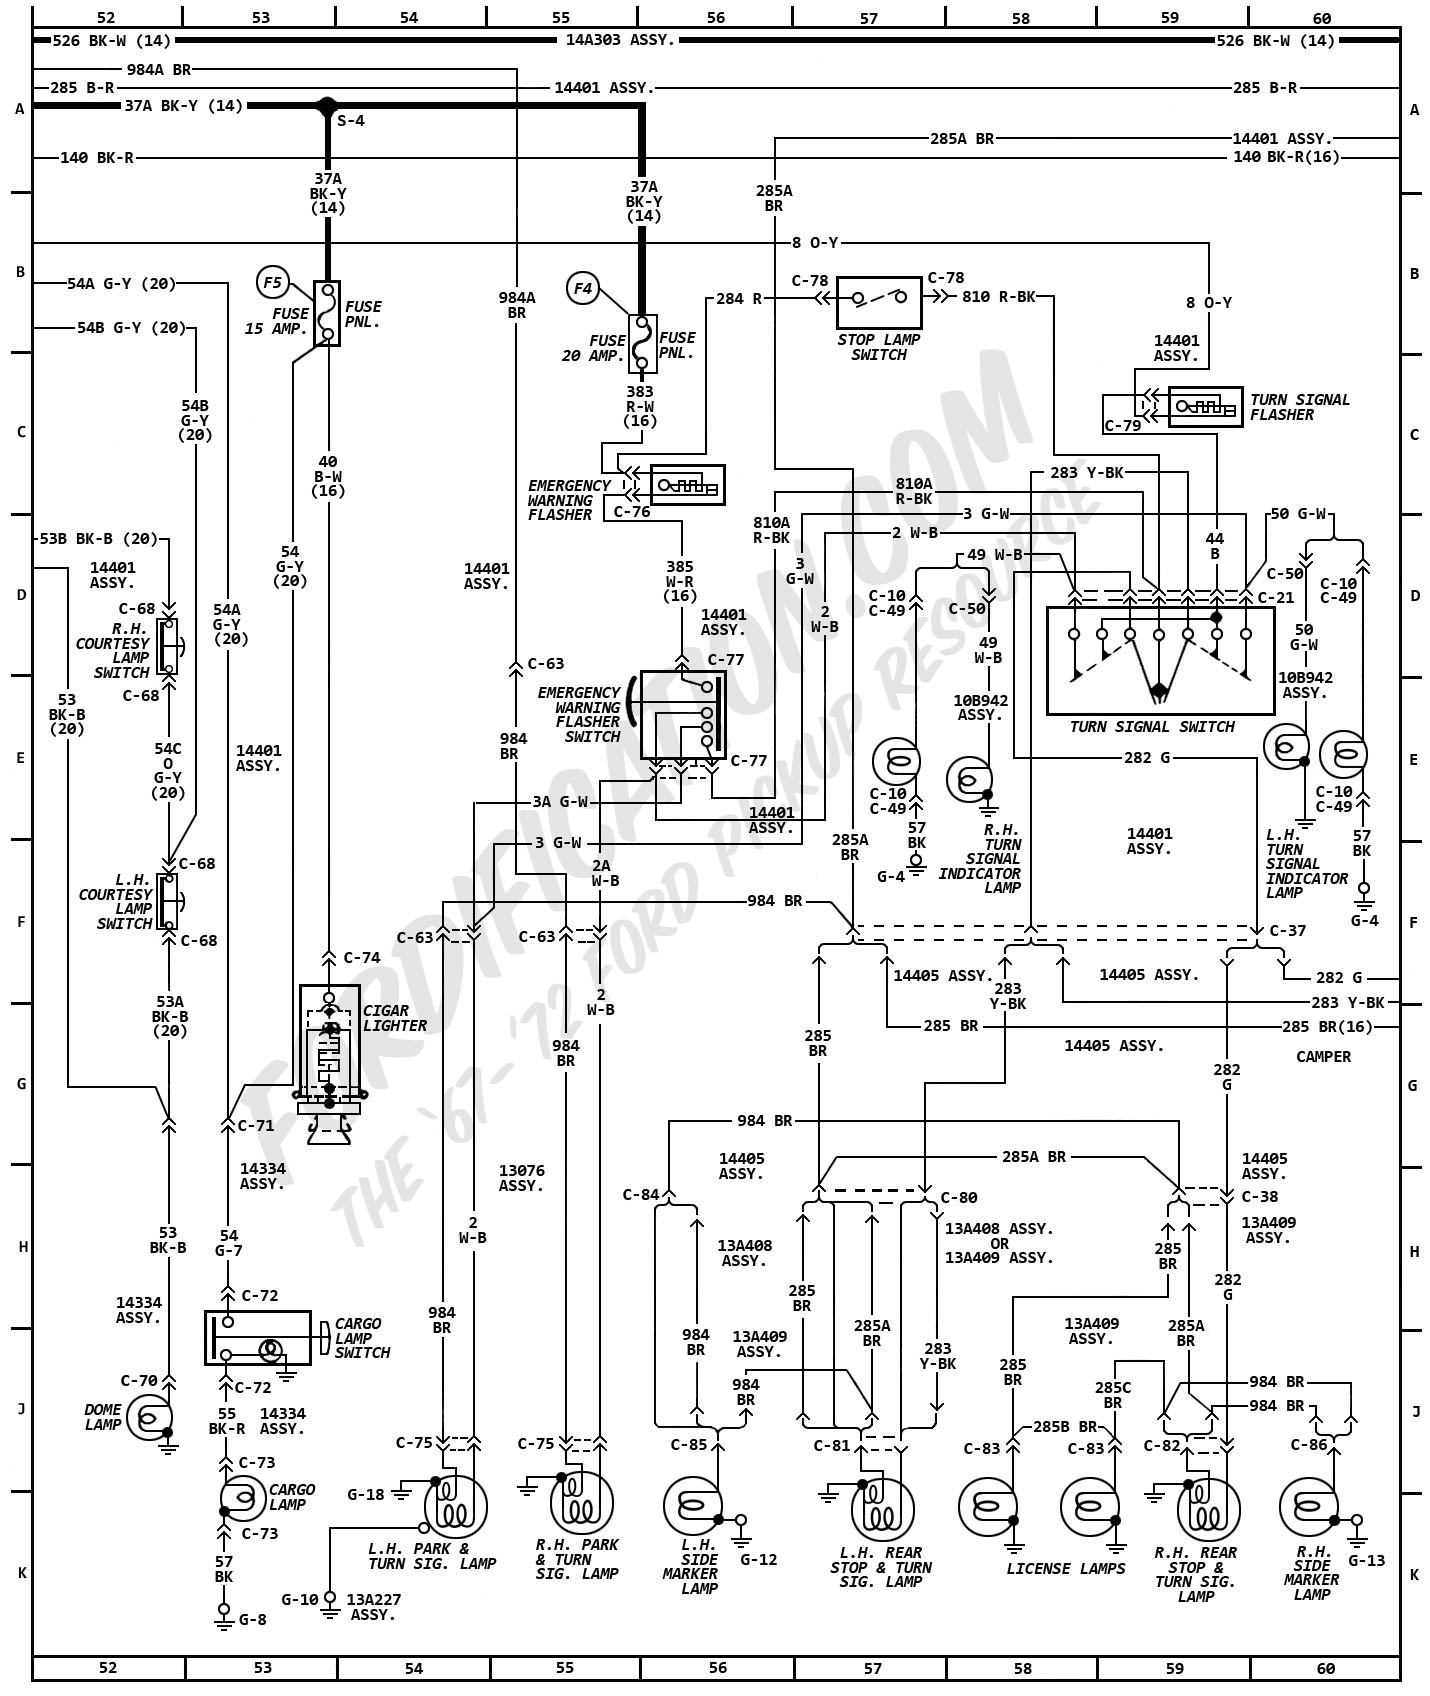 1972 F250 Ignition Wiring Schematic Opinions About Wiring Diagram \u2022  1988 Ford Ranger Wiring Diagram 1972 Ford F250 Ignition Wiring Diagram